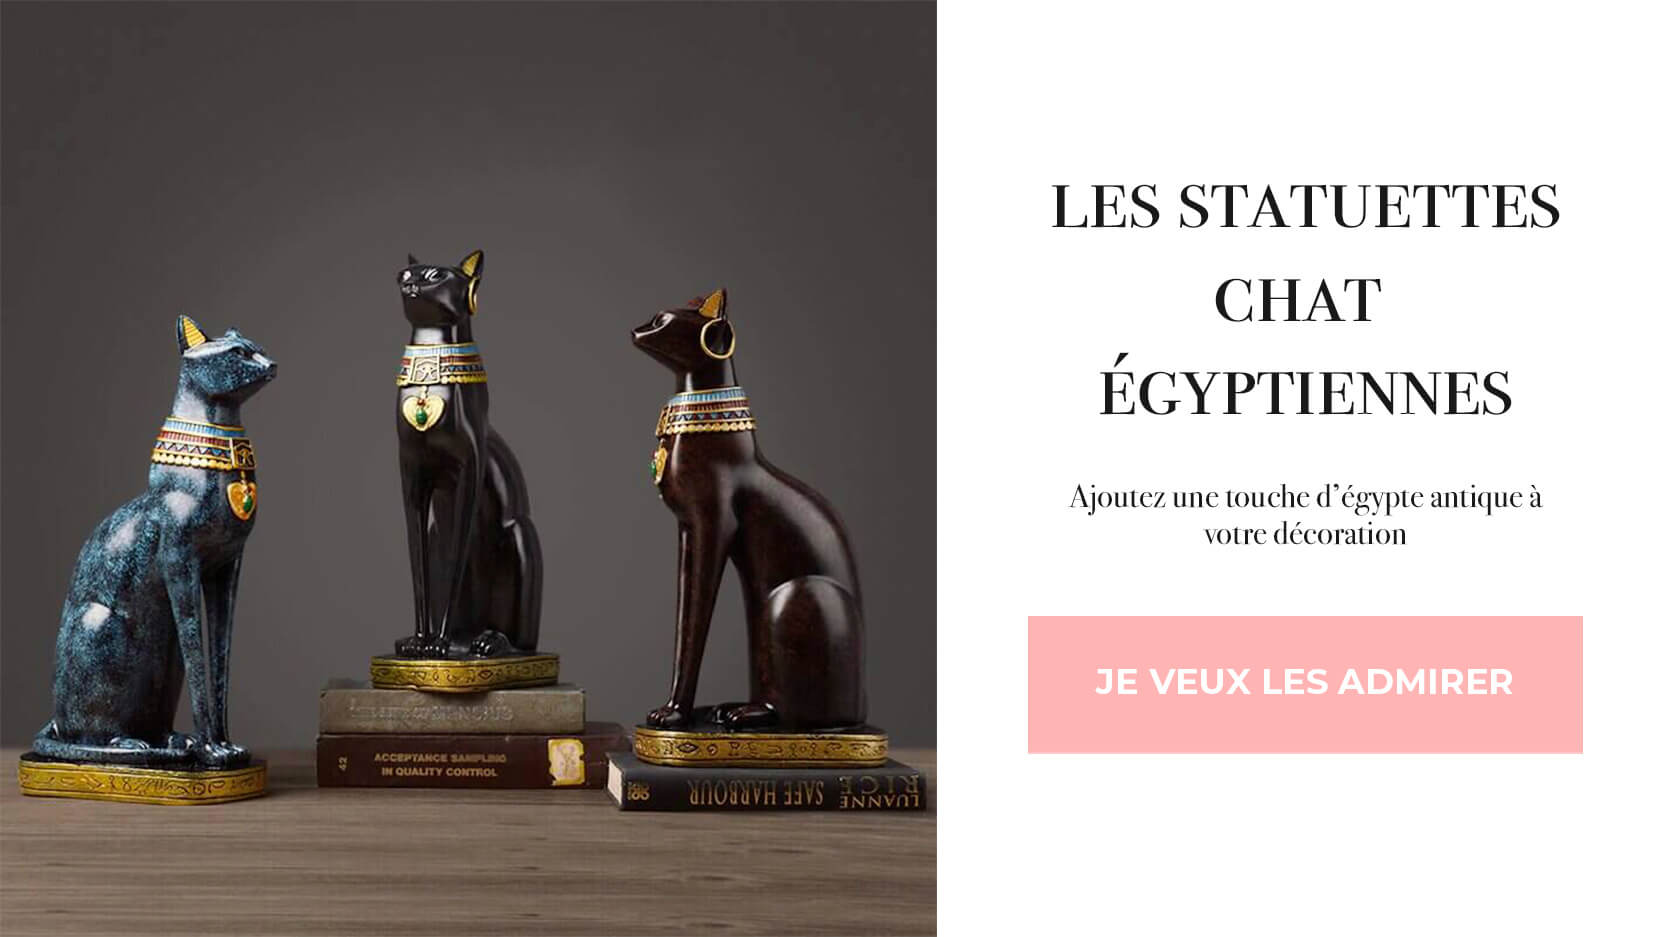 statuettes chat egyptiennes